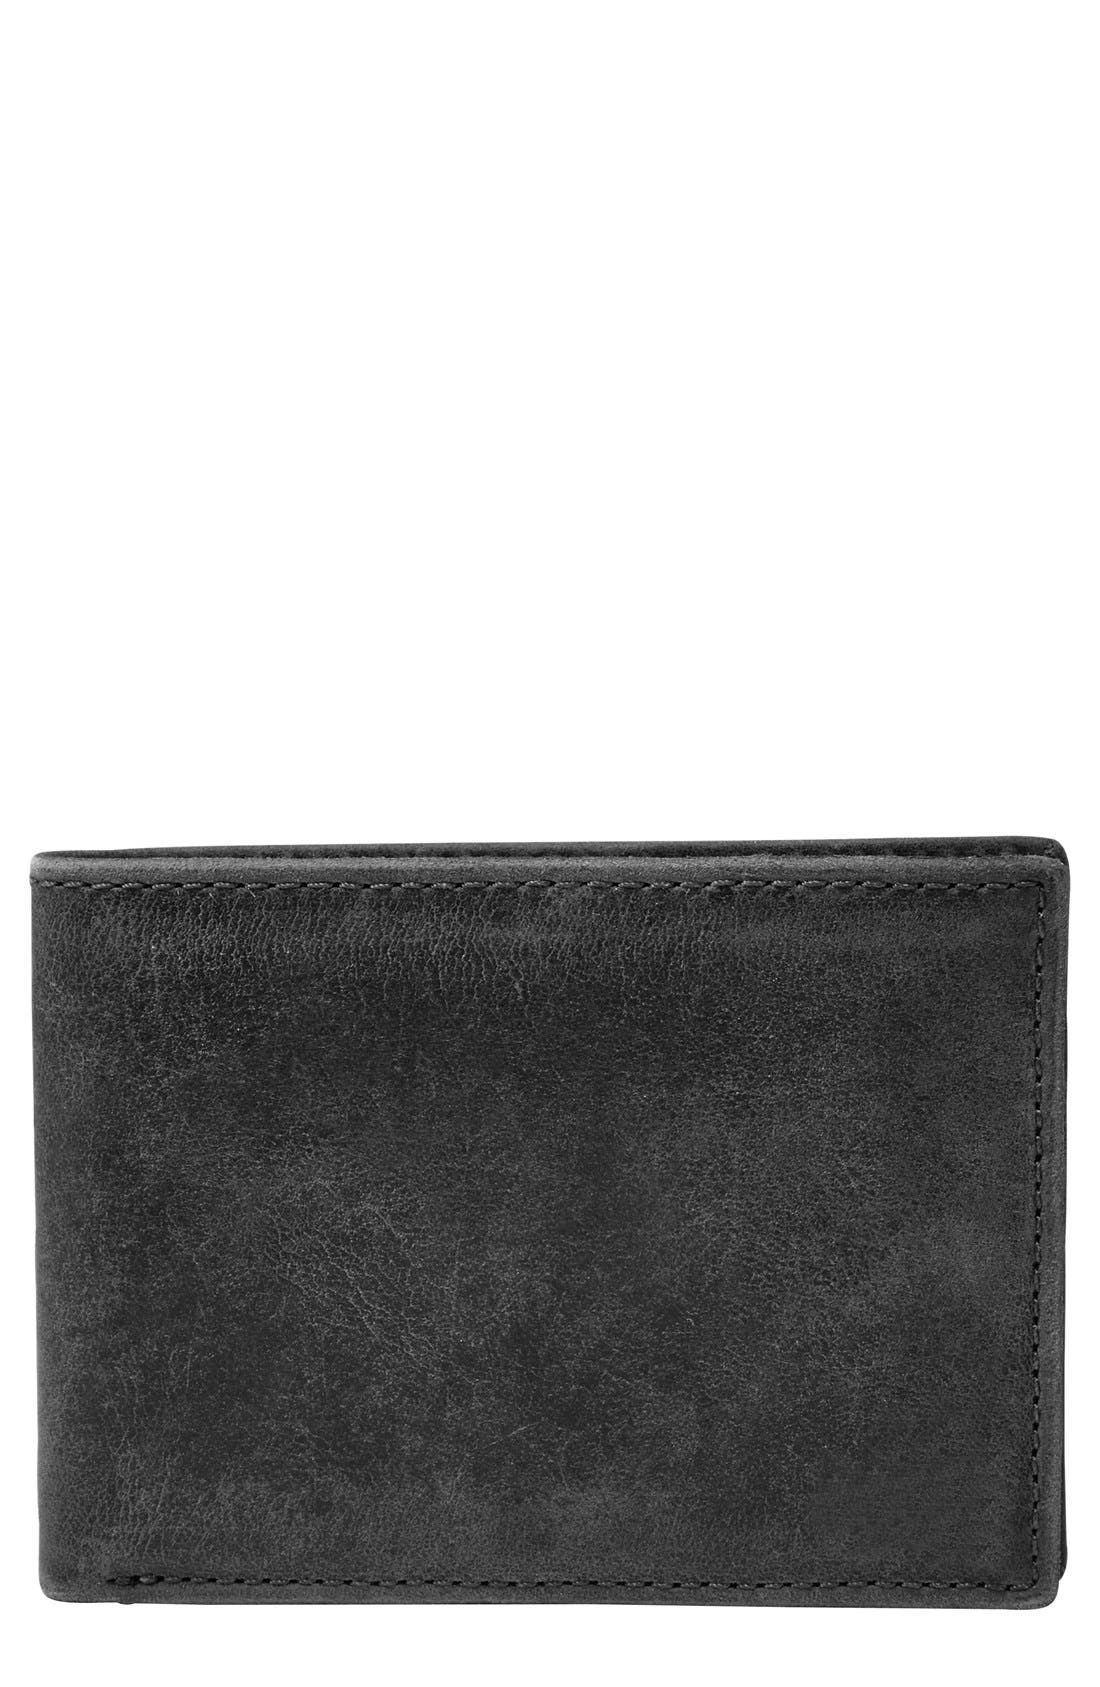 Fossil 'Anderson' Leather Front Pocket Bifold Wallet